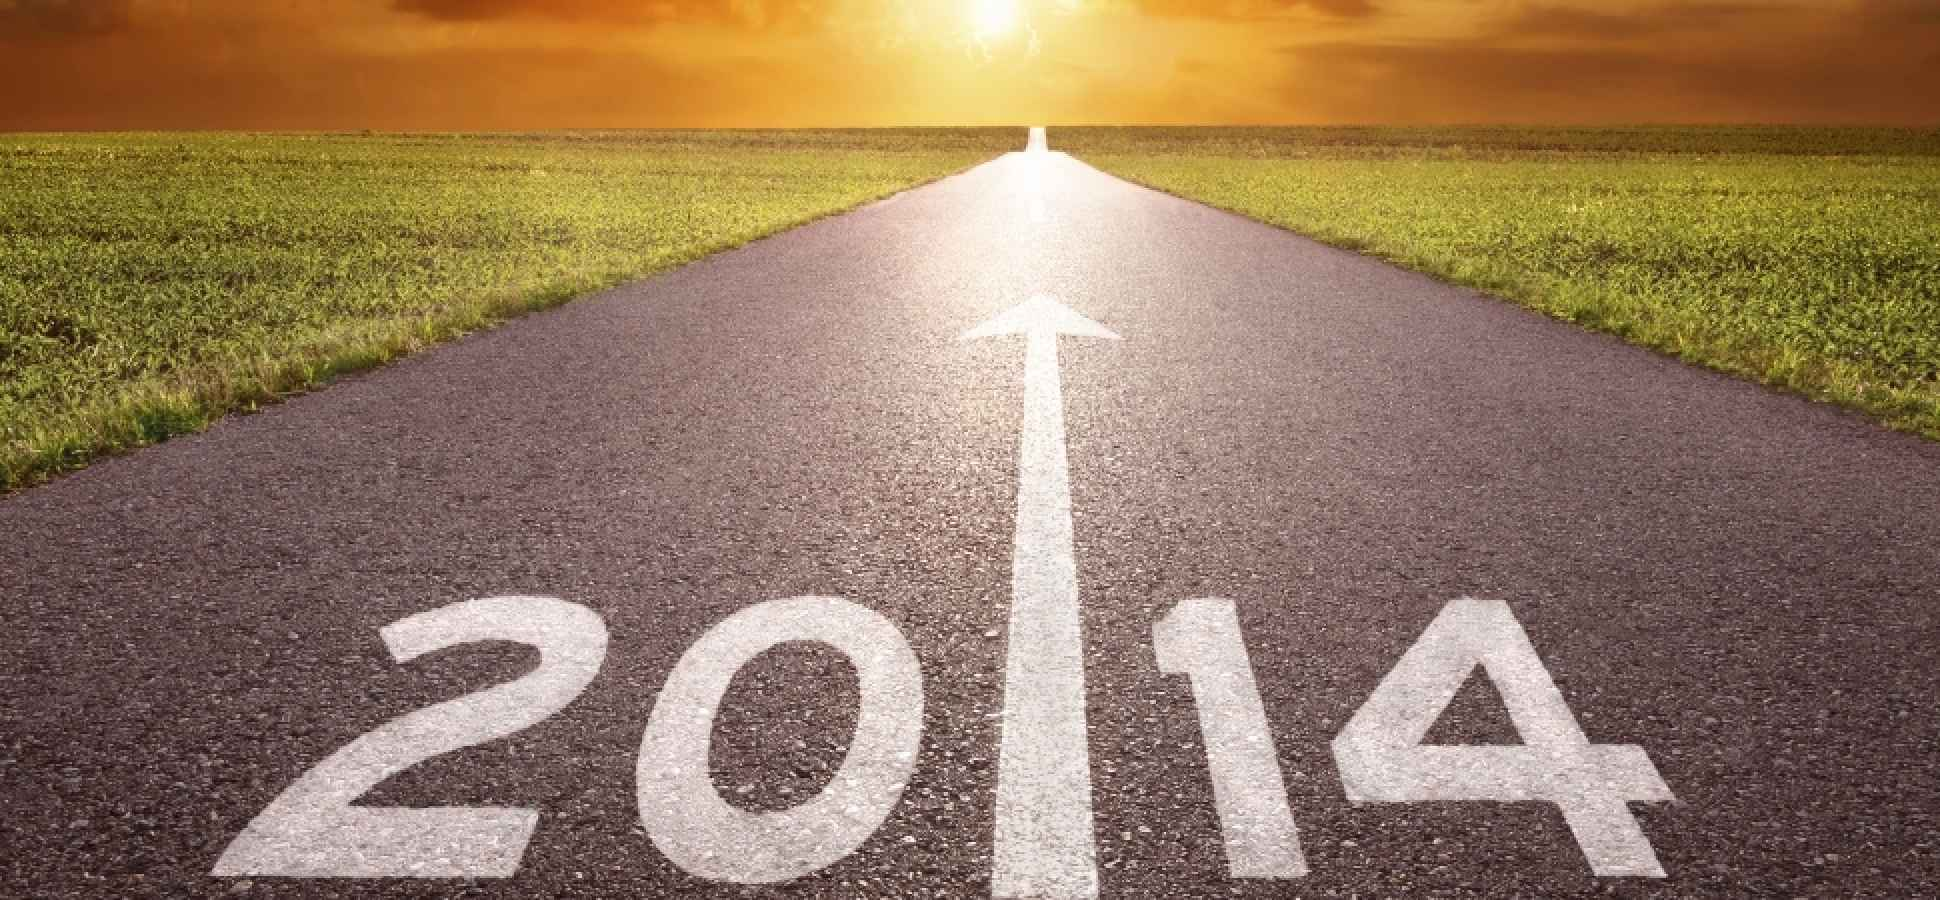 57 Ways to Make 2015 Fabulous